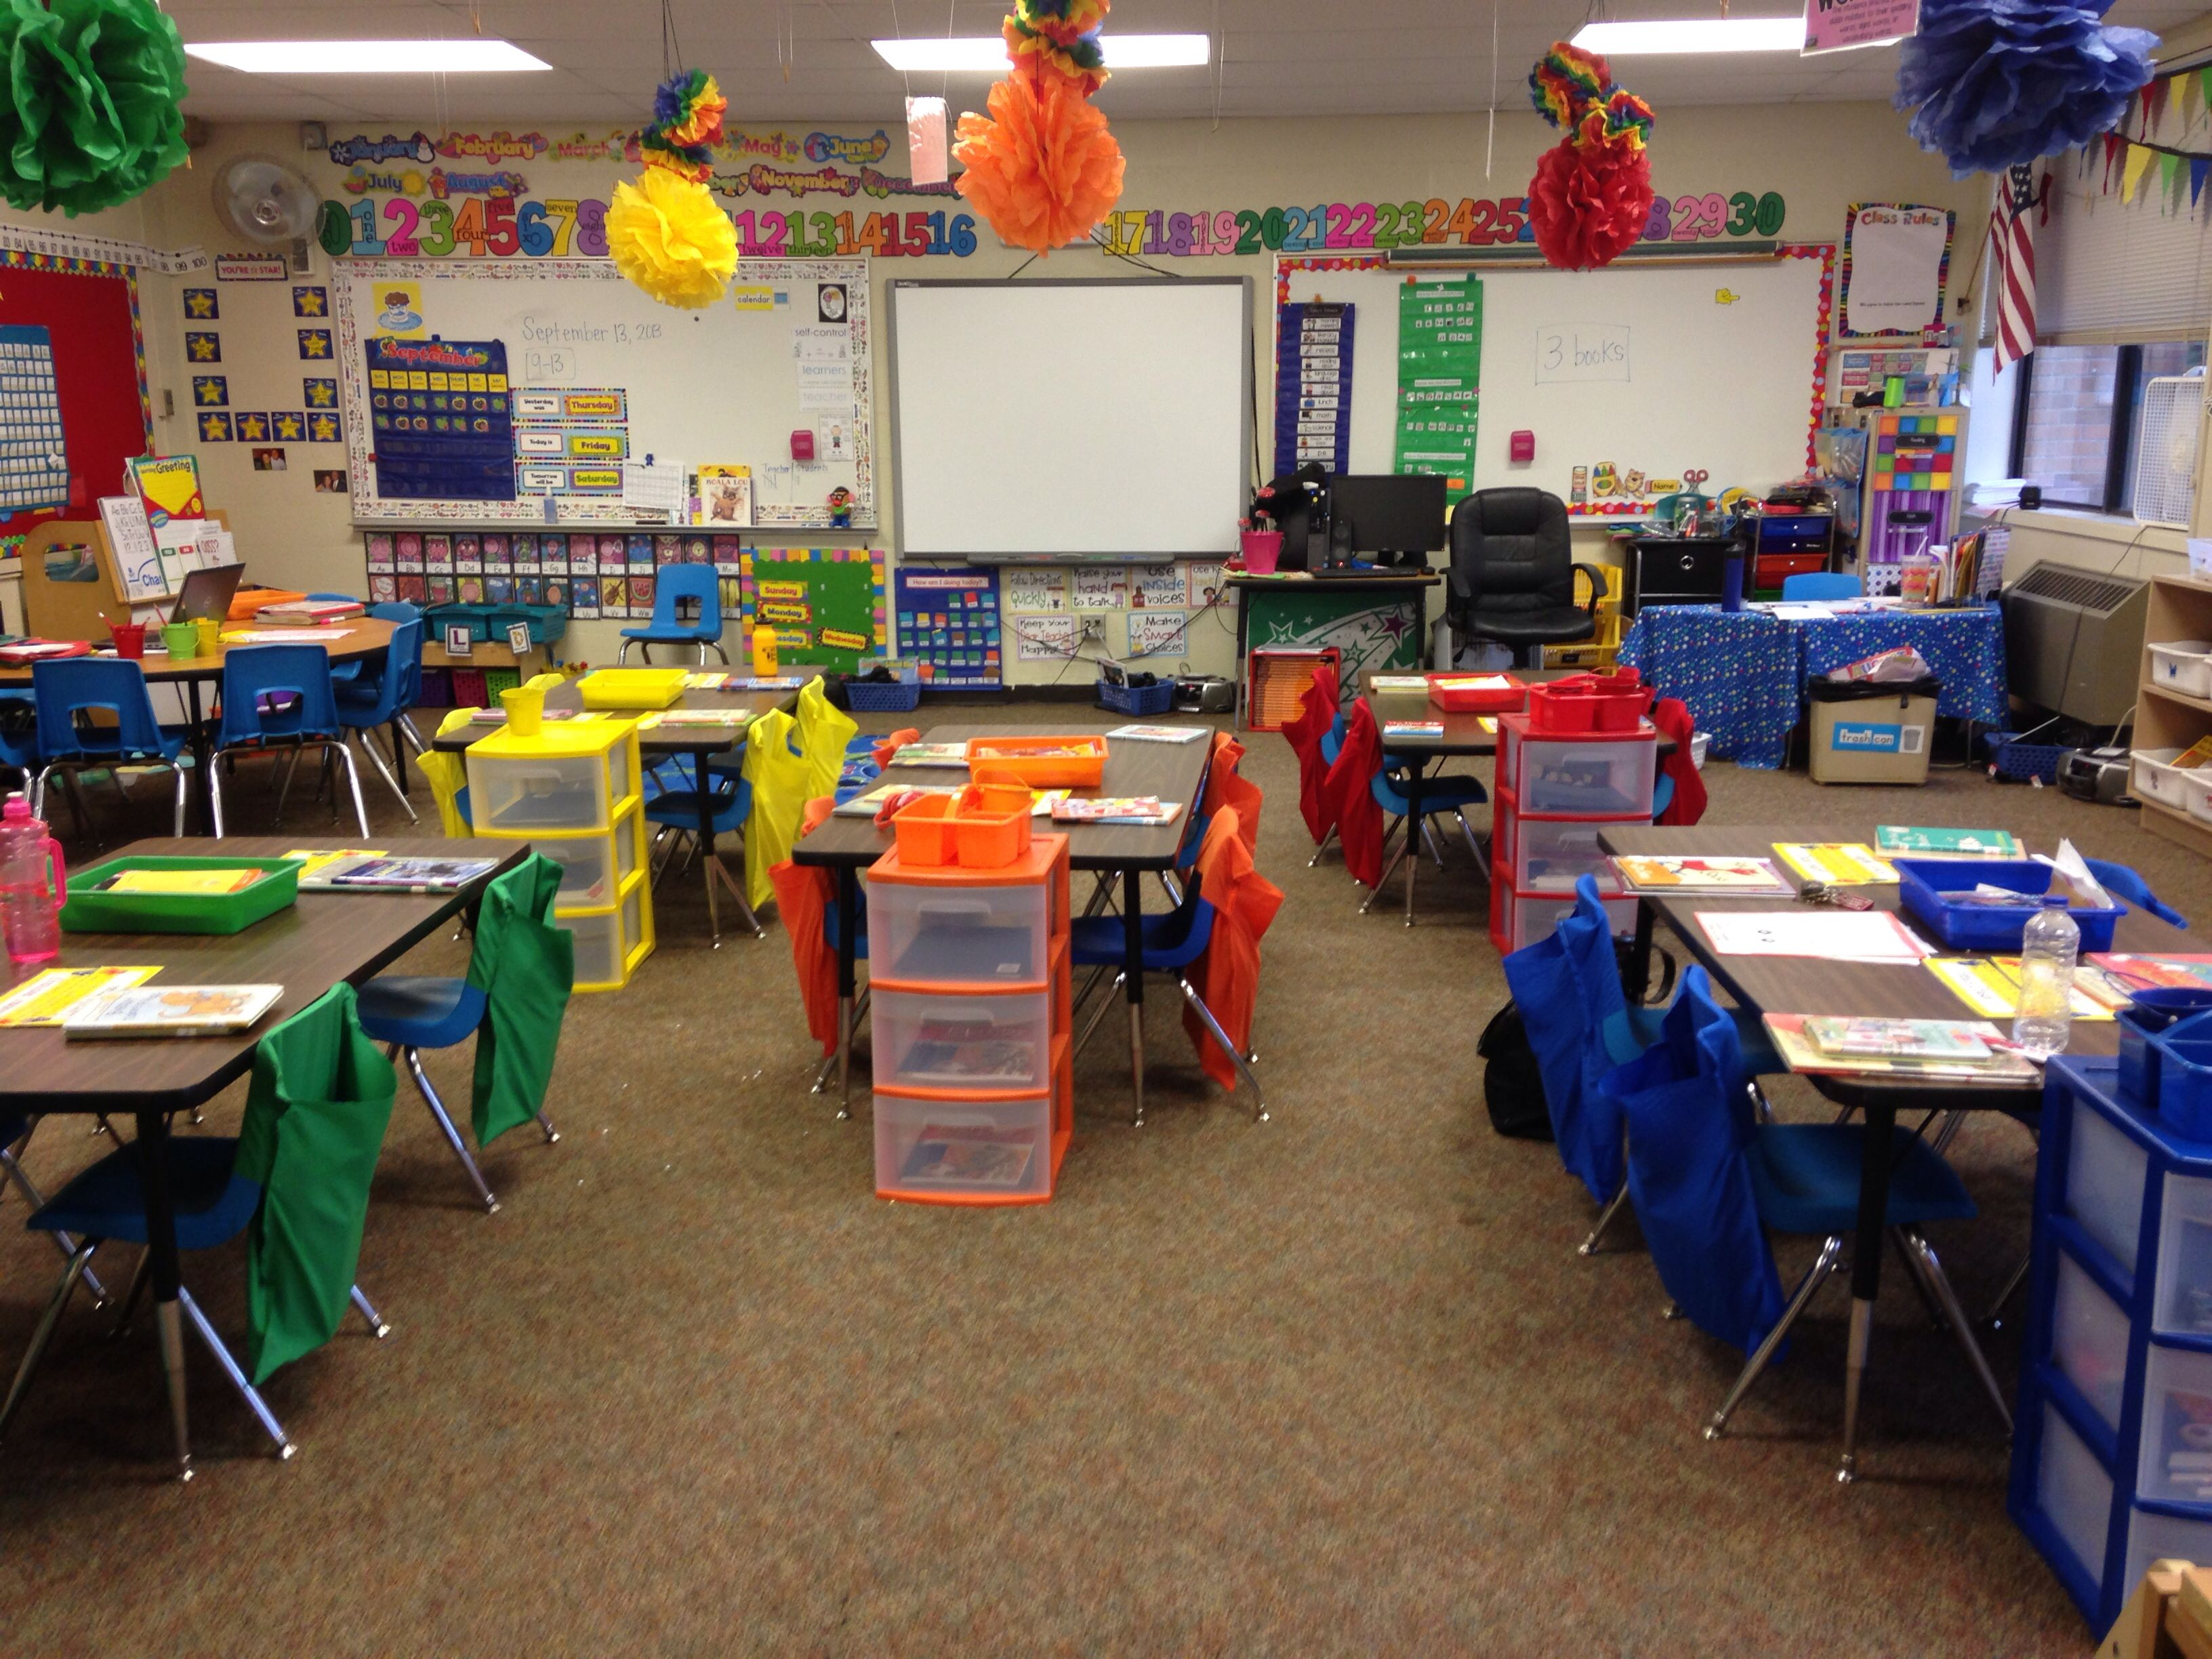 Unusual Classroom Decor : Chair pockets fun colorful carpeted middle school